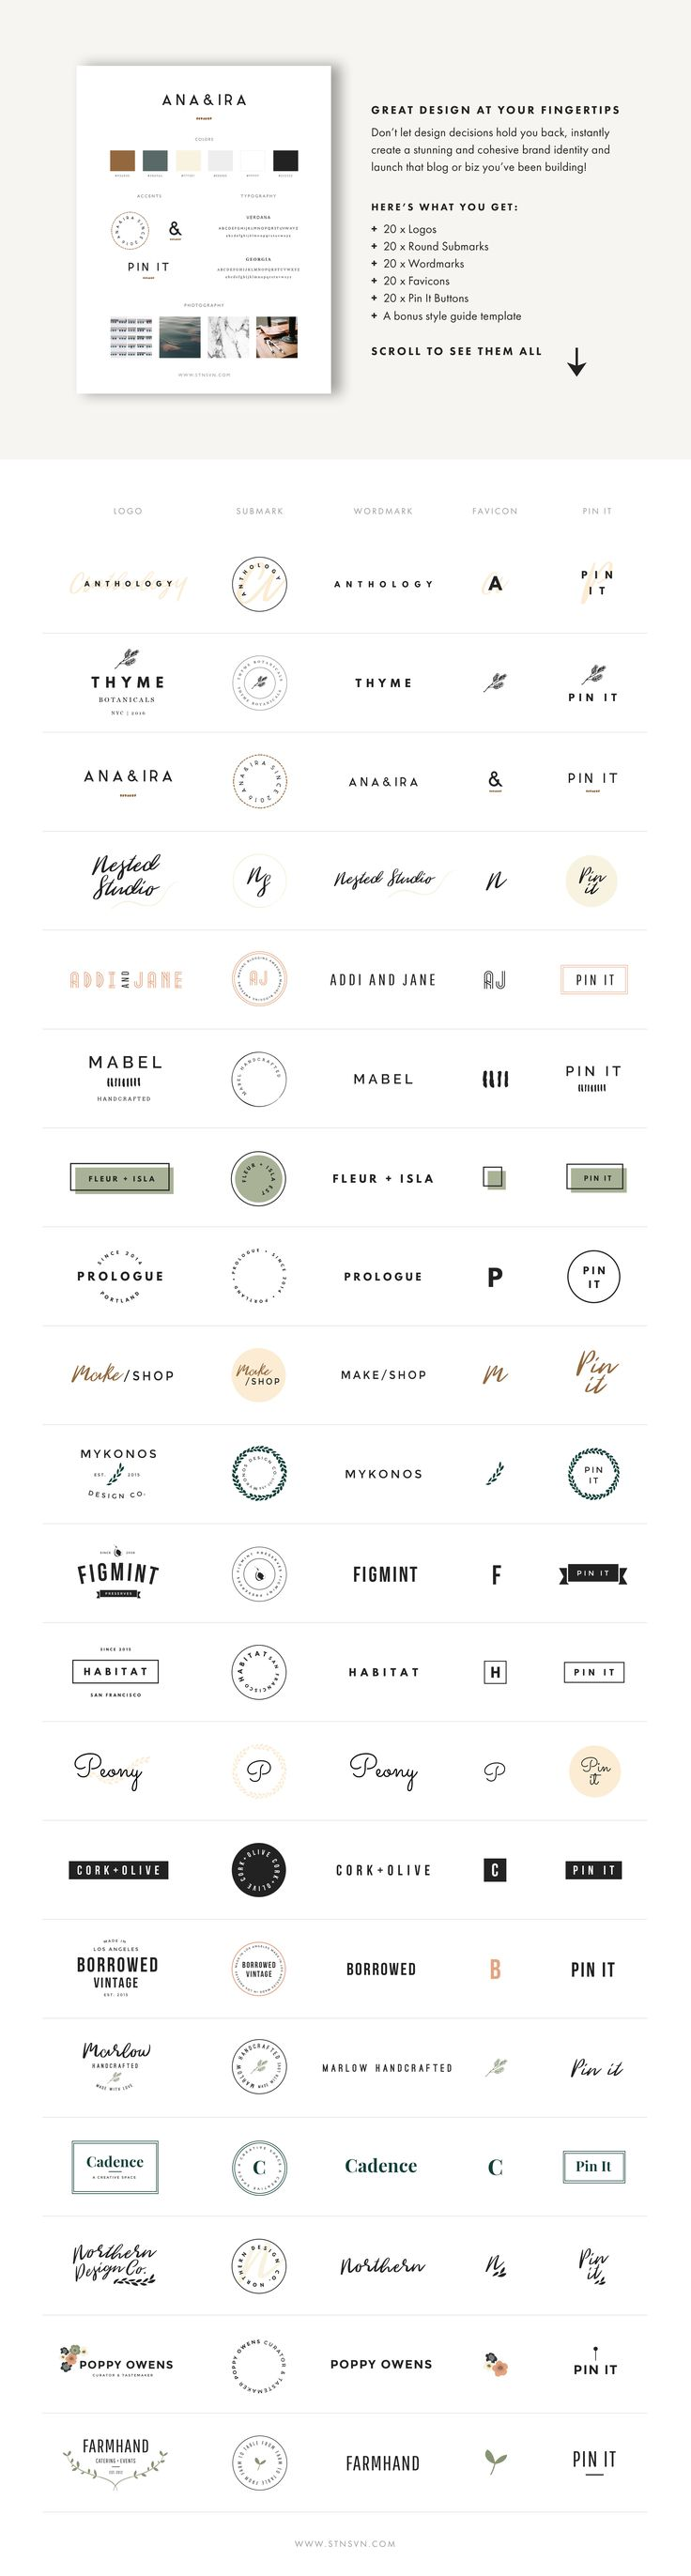 Awesome 1 Week Schedule Template Big 12 Page Booklet Template Regular 2 Page Resume Format Free Download 2015 Blank Calendar Template Young 2nd Grade Writing Template Orange3 Inch Button Template 25  Best Ideas About Pin It Button On Pinterest | Pin It ..